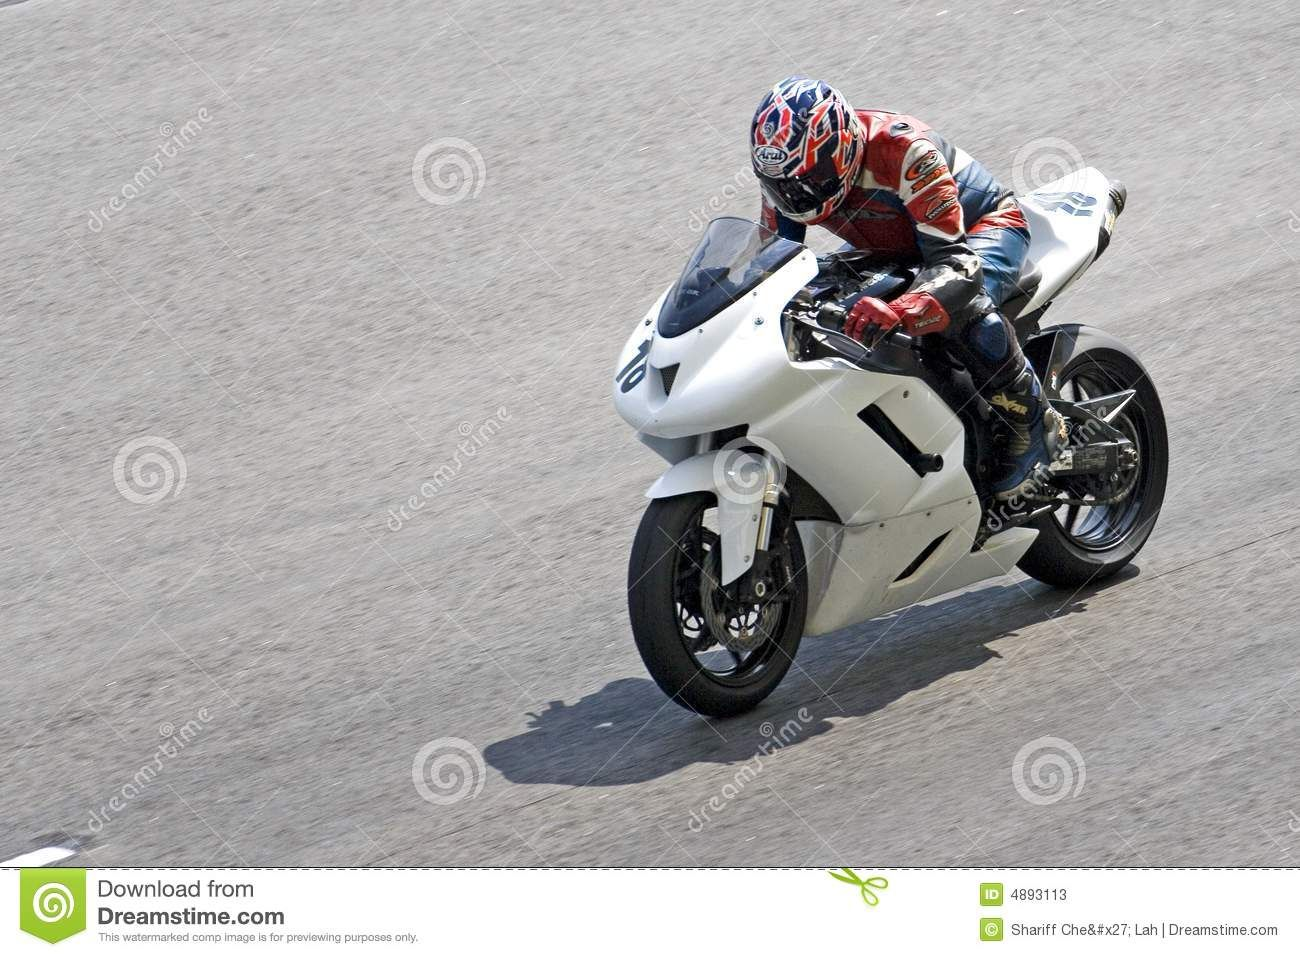 Motorcycle Race Image Of A Motorcycle Racer At The Malaysian Super Series Held Sponsored Sponsored Ad Image Mo Racing Motorcycles Racing Motorcycle